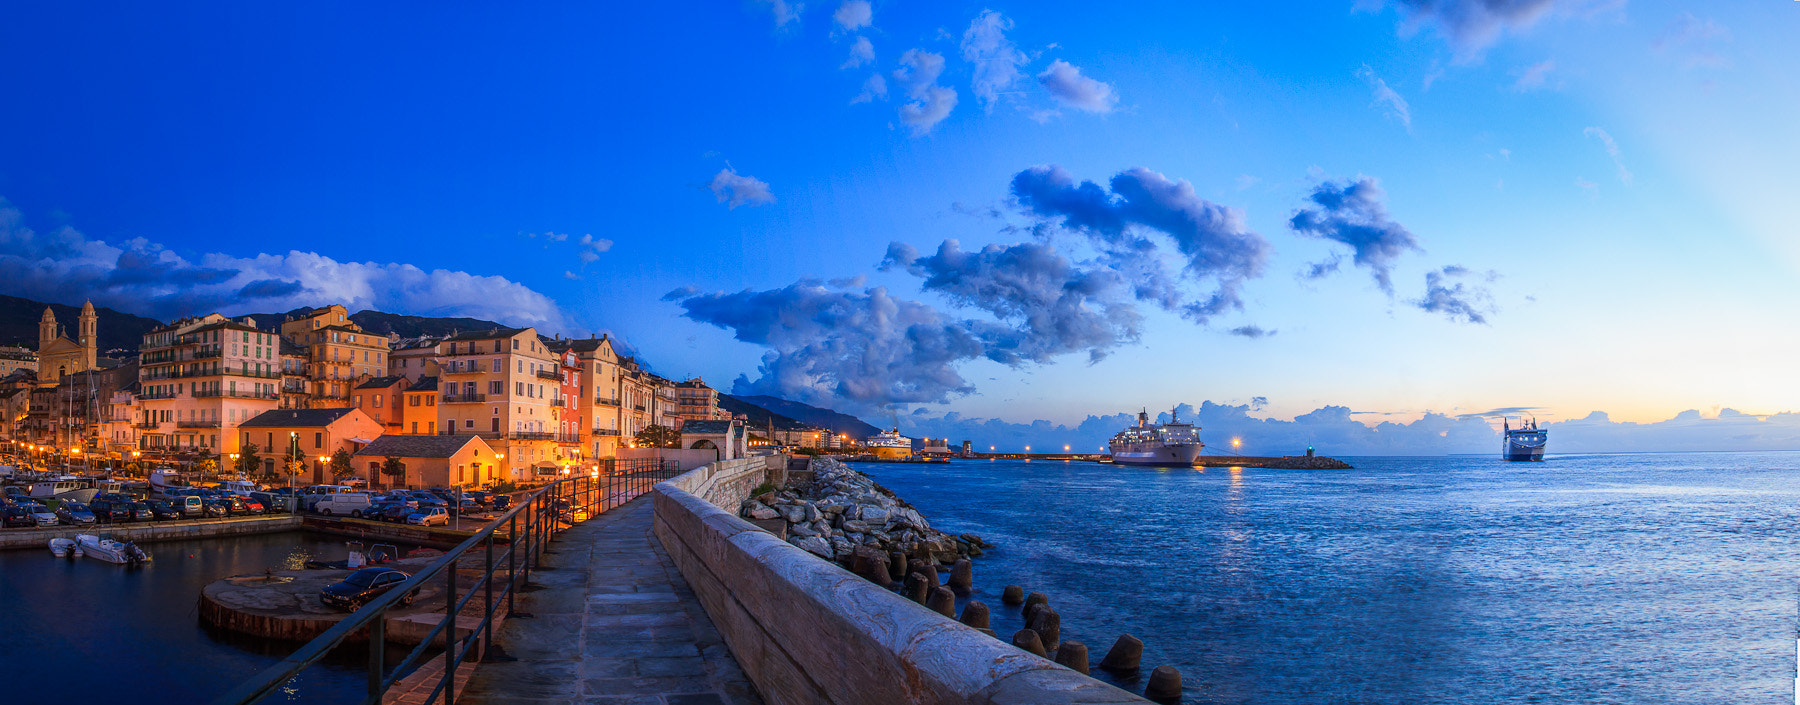 Photograph Pano Bastia Corsica Early Morning II by Ramelli Serge on 500px